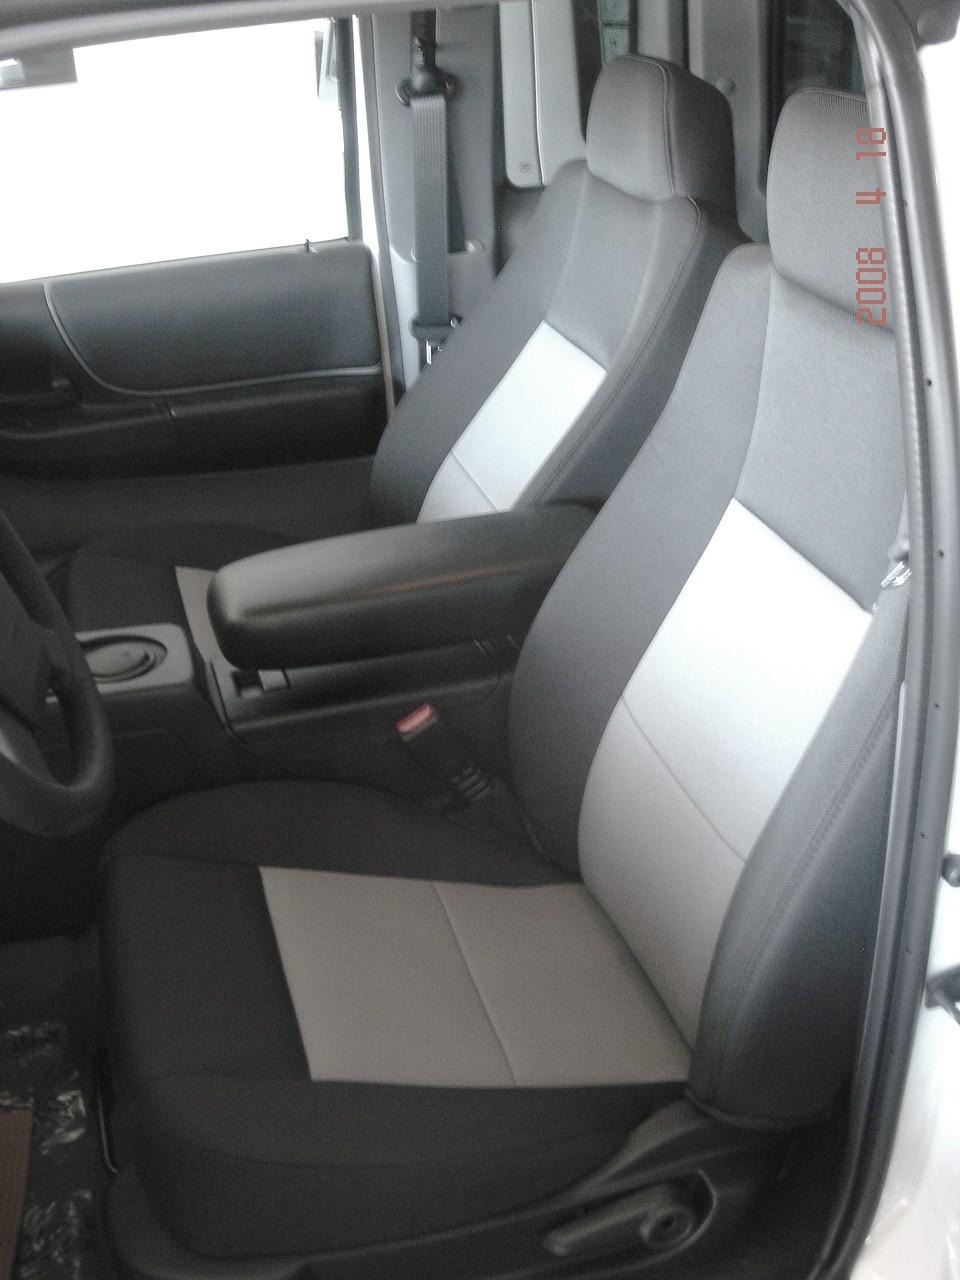 2004 2005 Ford Ranger Bucket Seats With Molded Headrests Durafit Covers Custom Fit Car